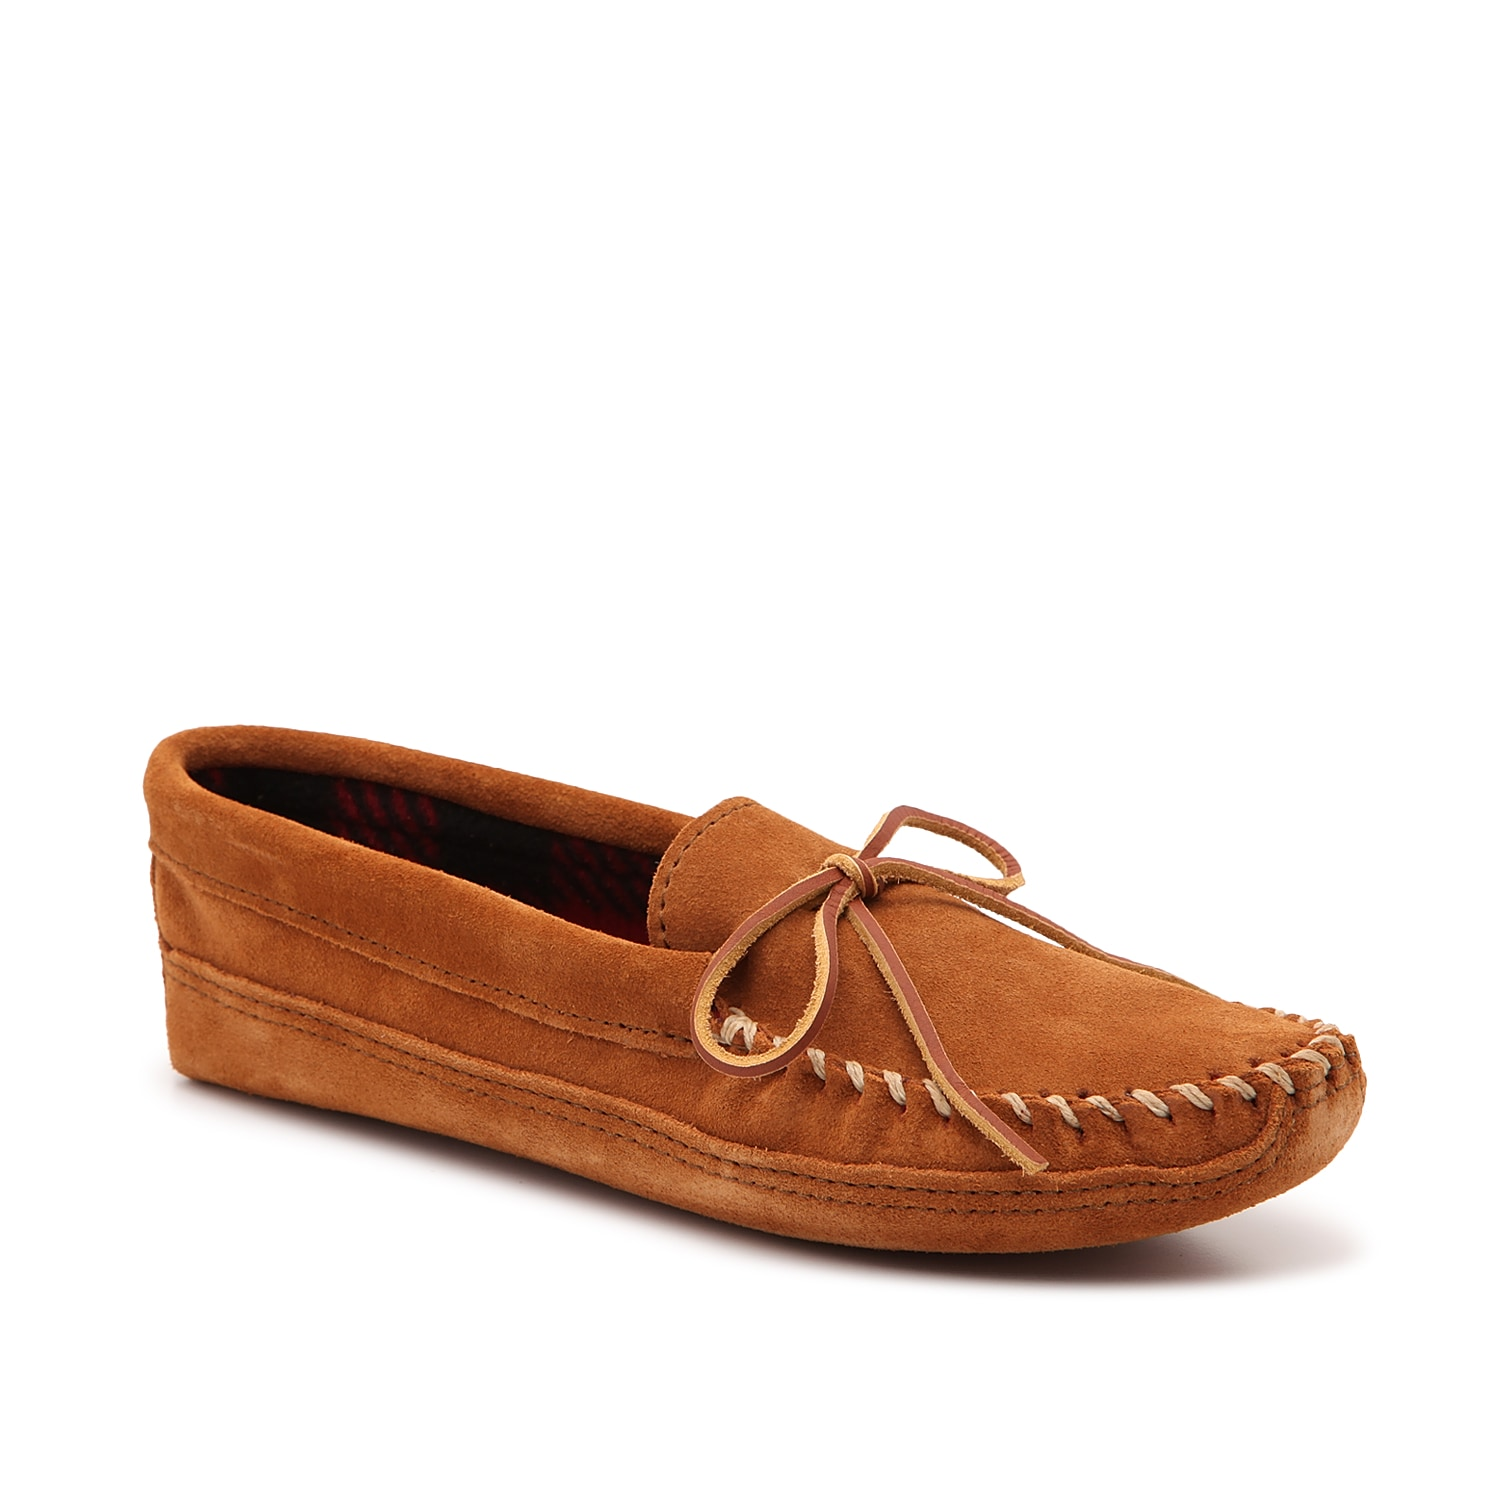 Experience supreme comfort by slipping on the Duncan moccasin slipper from Minnetonka. Soft flannel lining and a suede outsole make this pair ideal for house lounging.